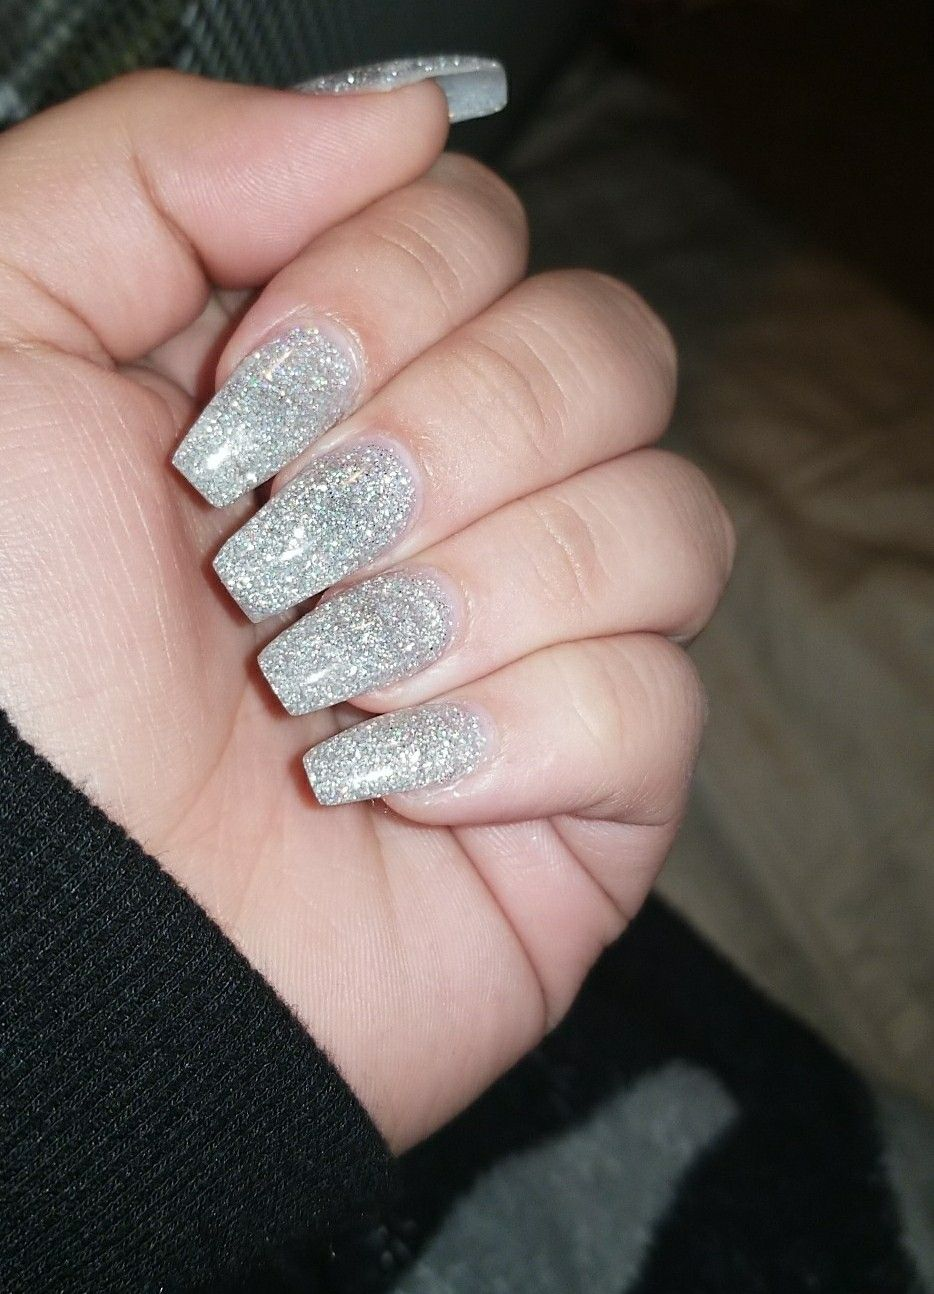 Sparkly Silver Acrylic Nails Prom Nails Silver Silver Acrylic Nails Silver Glitter Nails